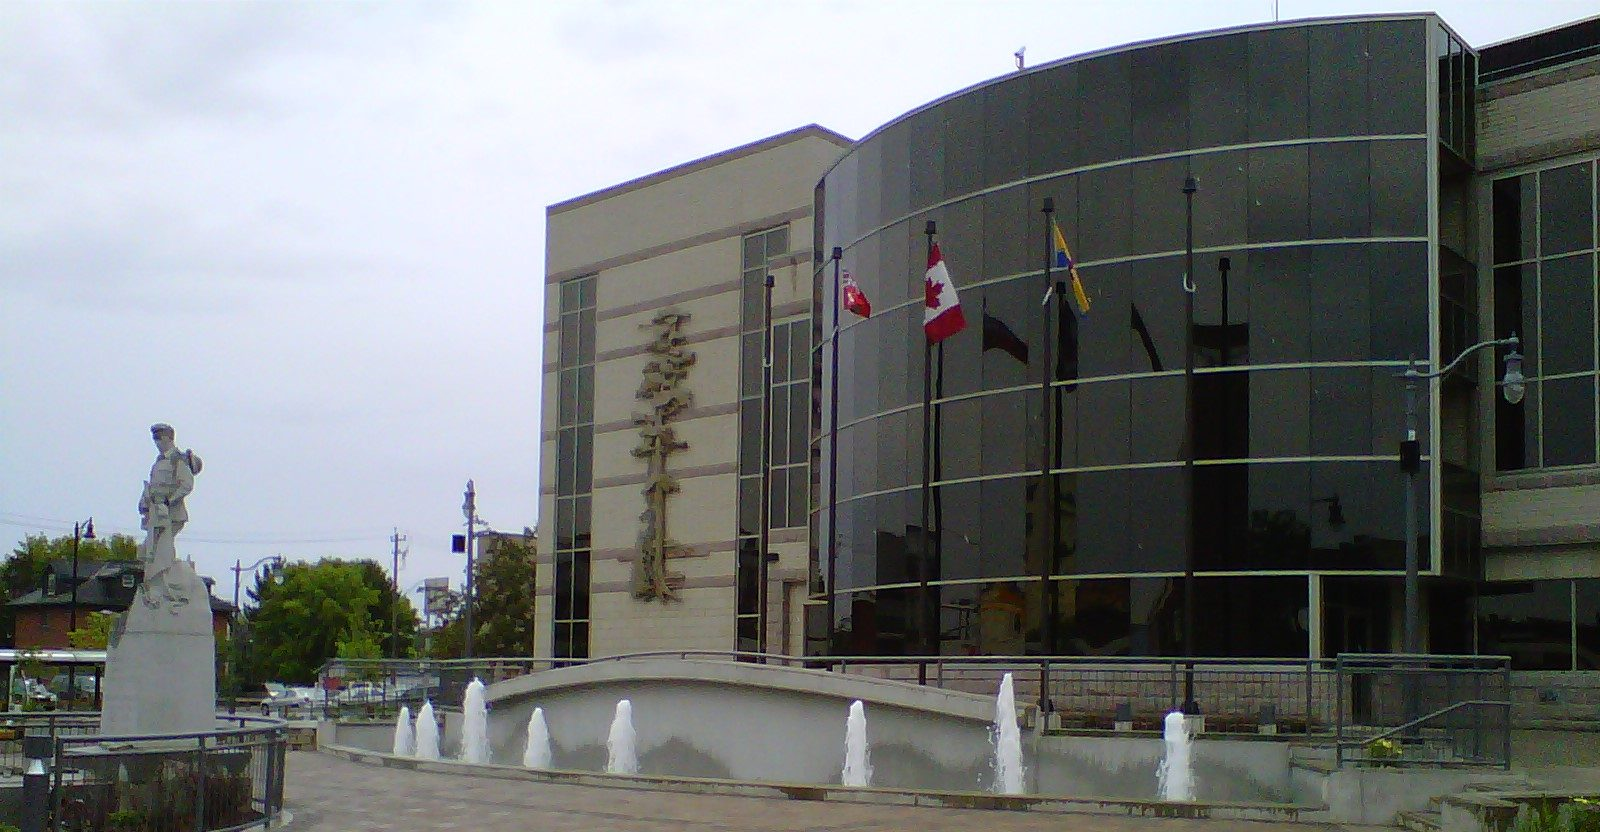 Integrity Commissioner Sought By City